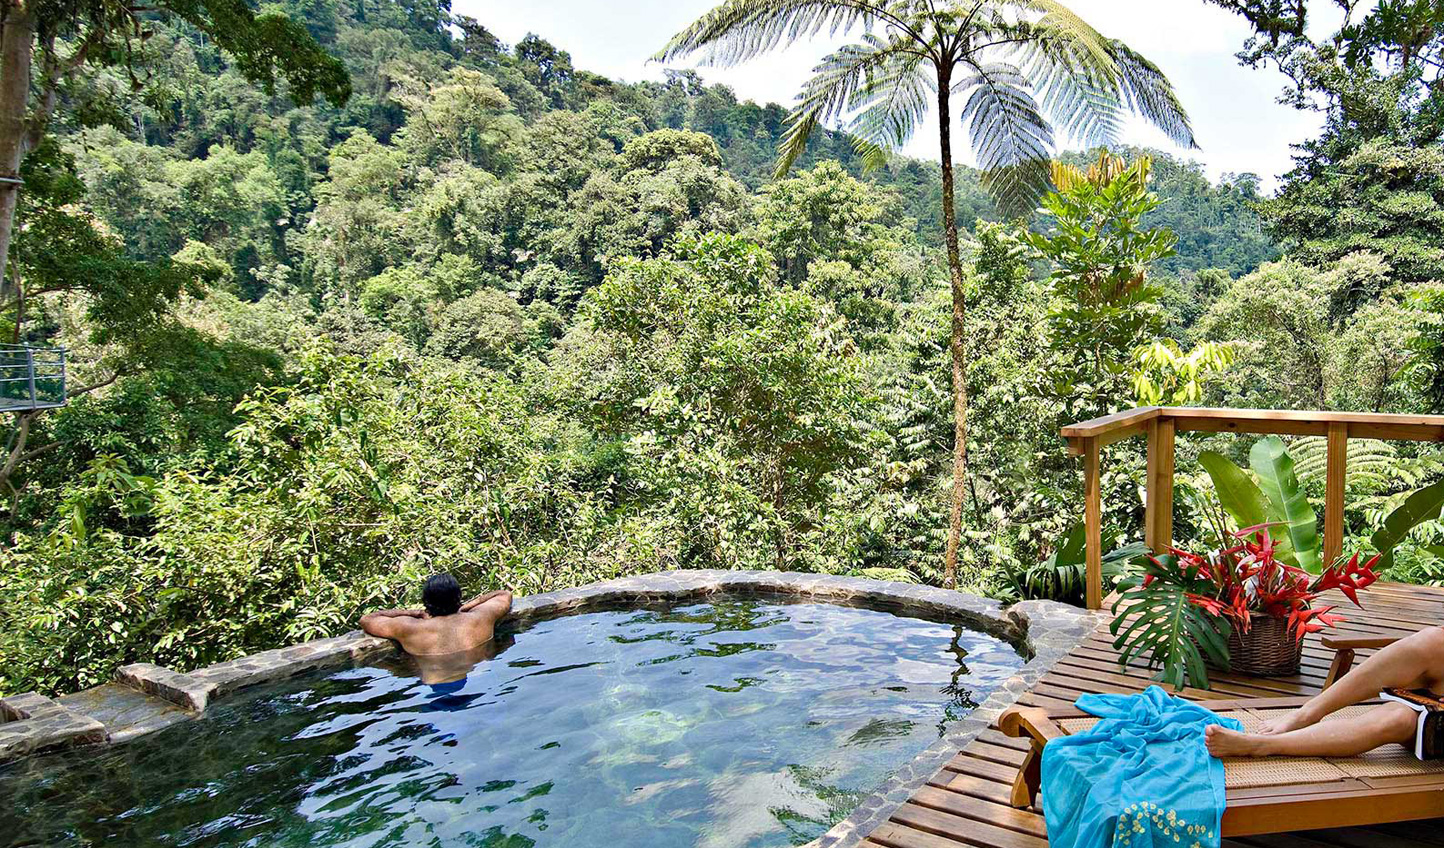 Admire the jungle view from your plunge pool